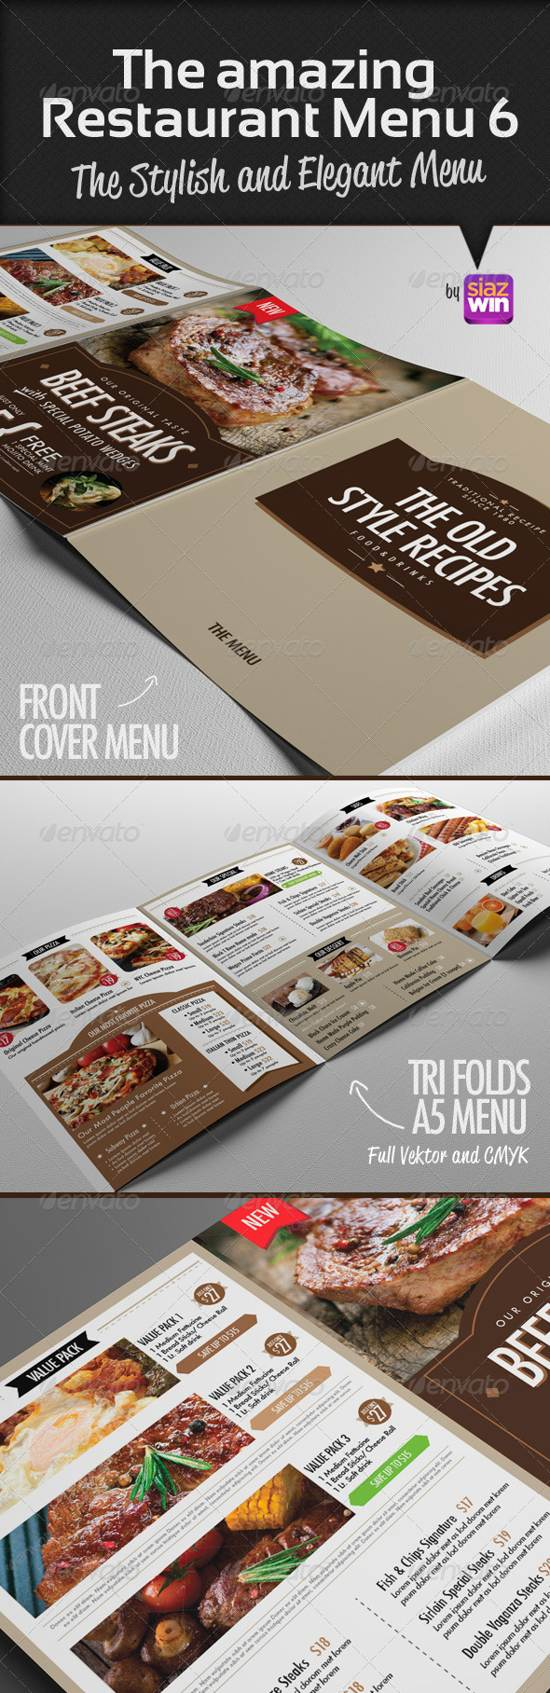 amazing restaurant menu template